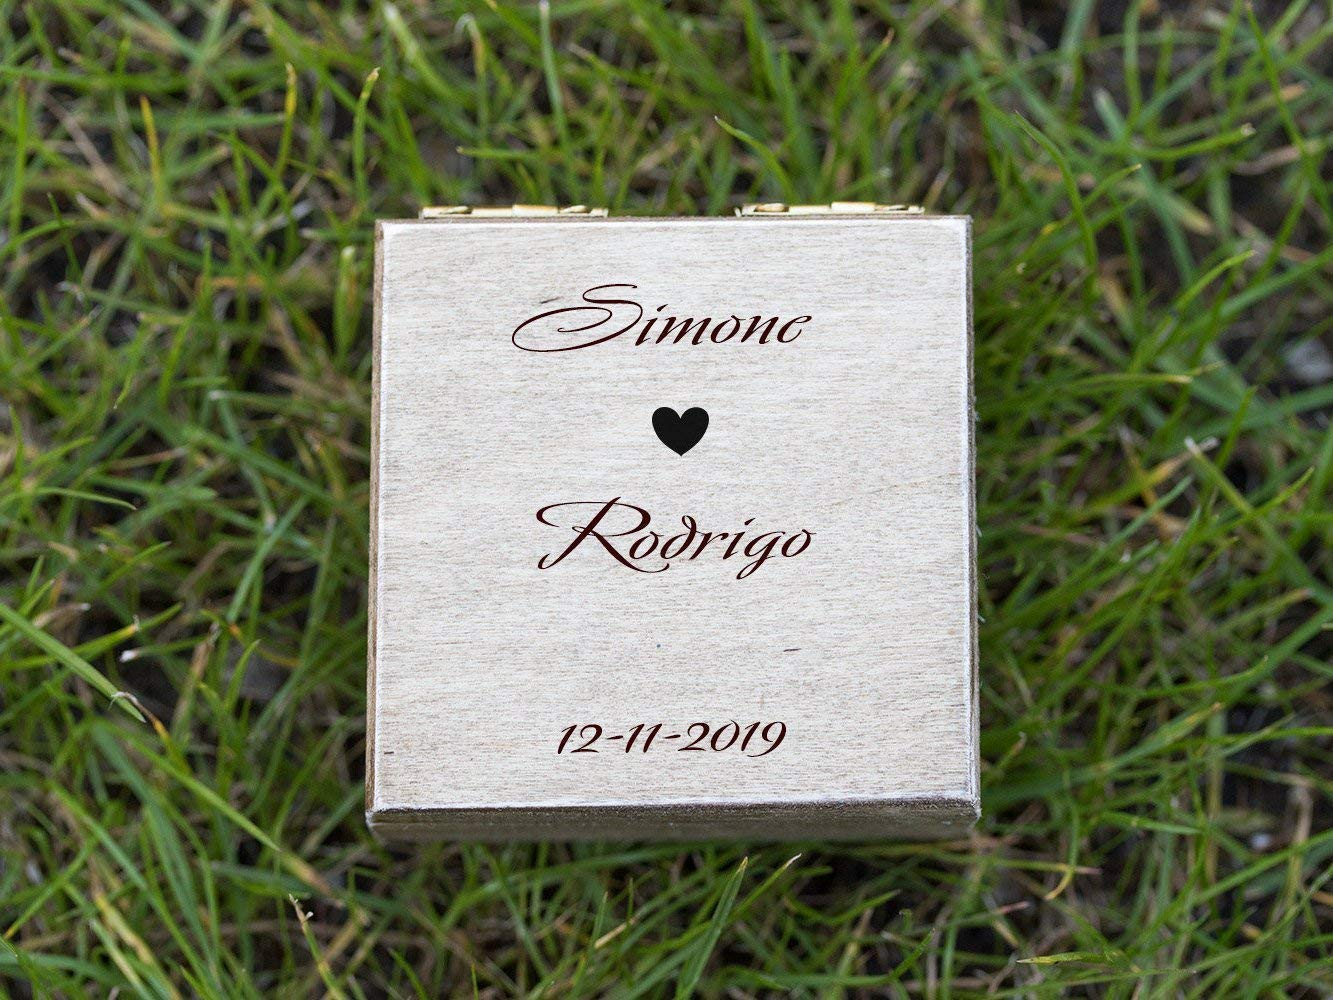 Custom ring bearer box, Personalized wedding box, Engraved ring box, Wedding ring box, Ring Bearer Pillow, Engagement box, Wedding Ring Box, Ring Holder, Proposal box, Wooden box